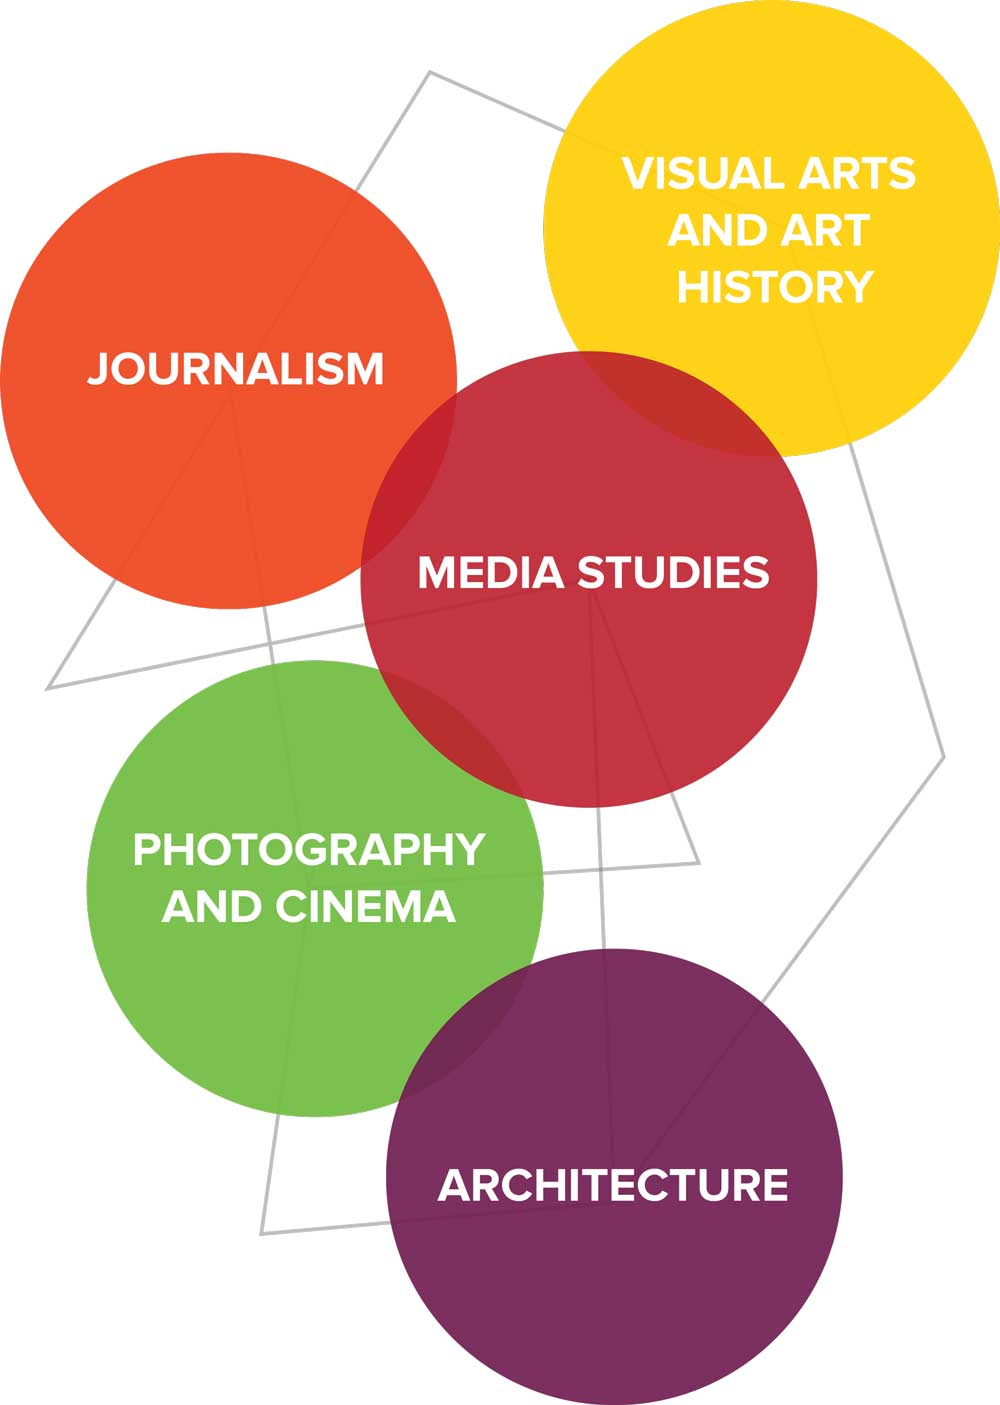 Graphic displaying the major areas of Visual Arts and Media Studies